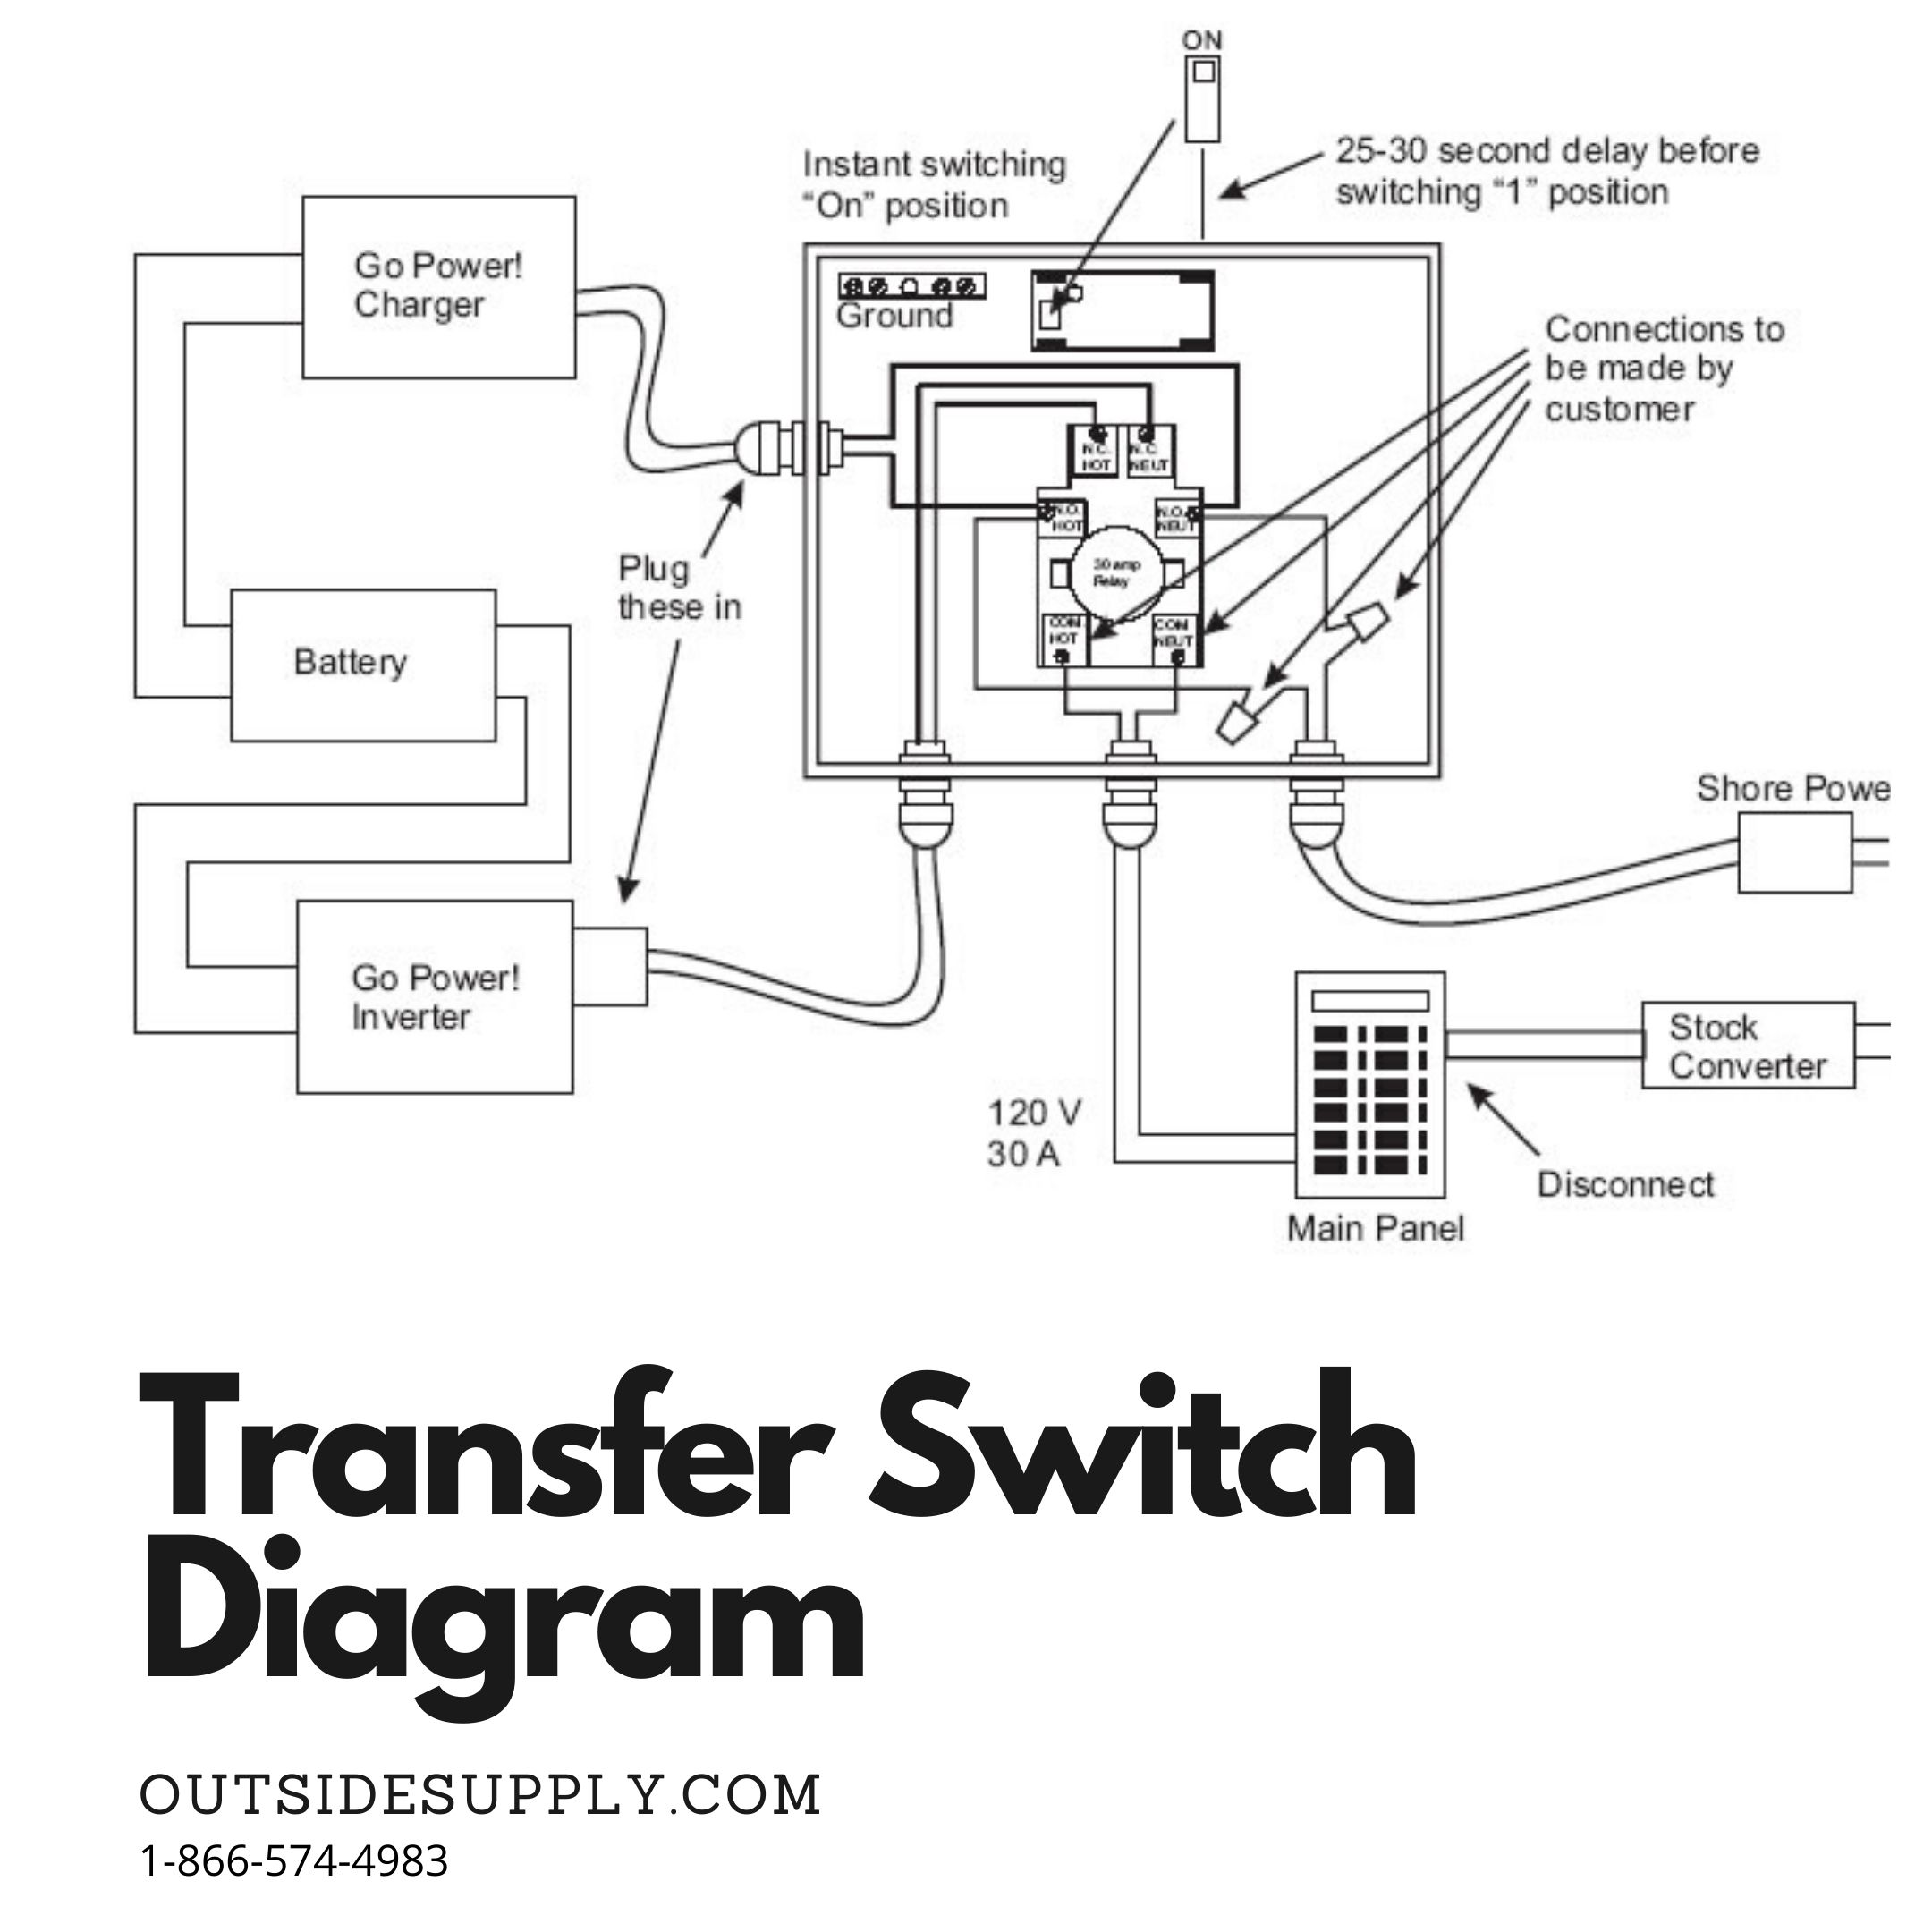 Go Power 30 Amp Transfer Switch